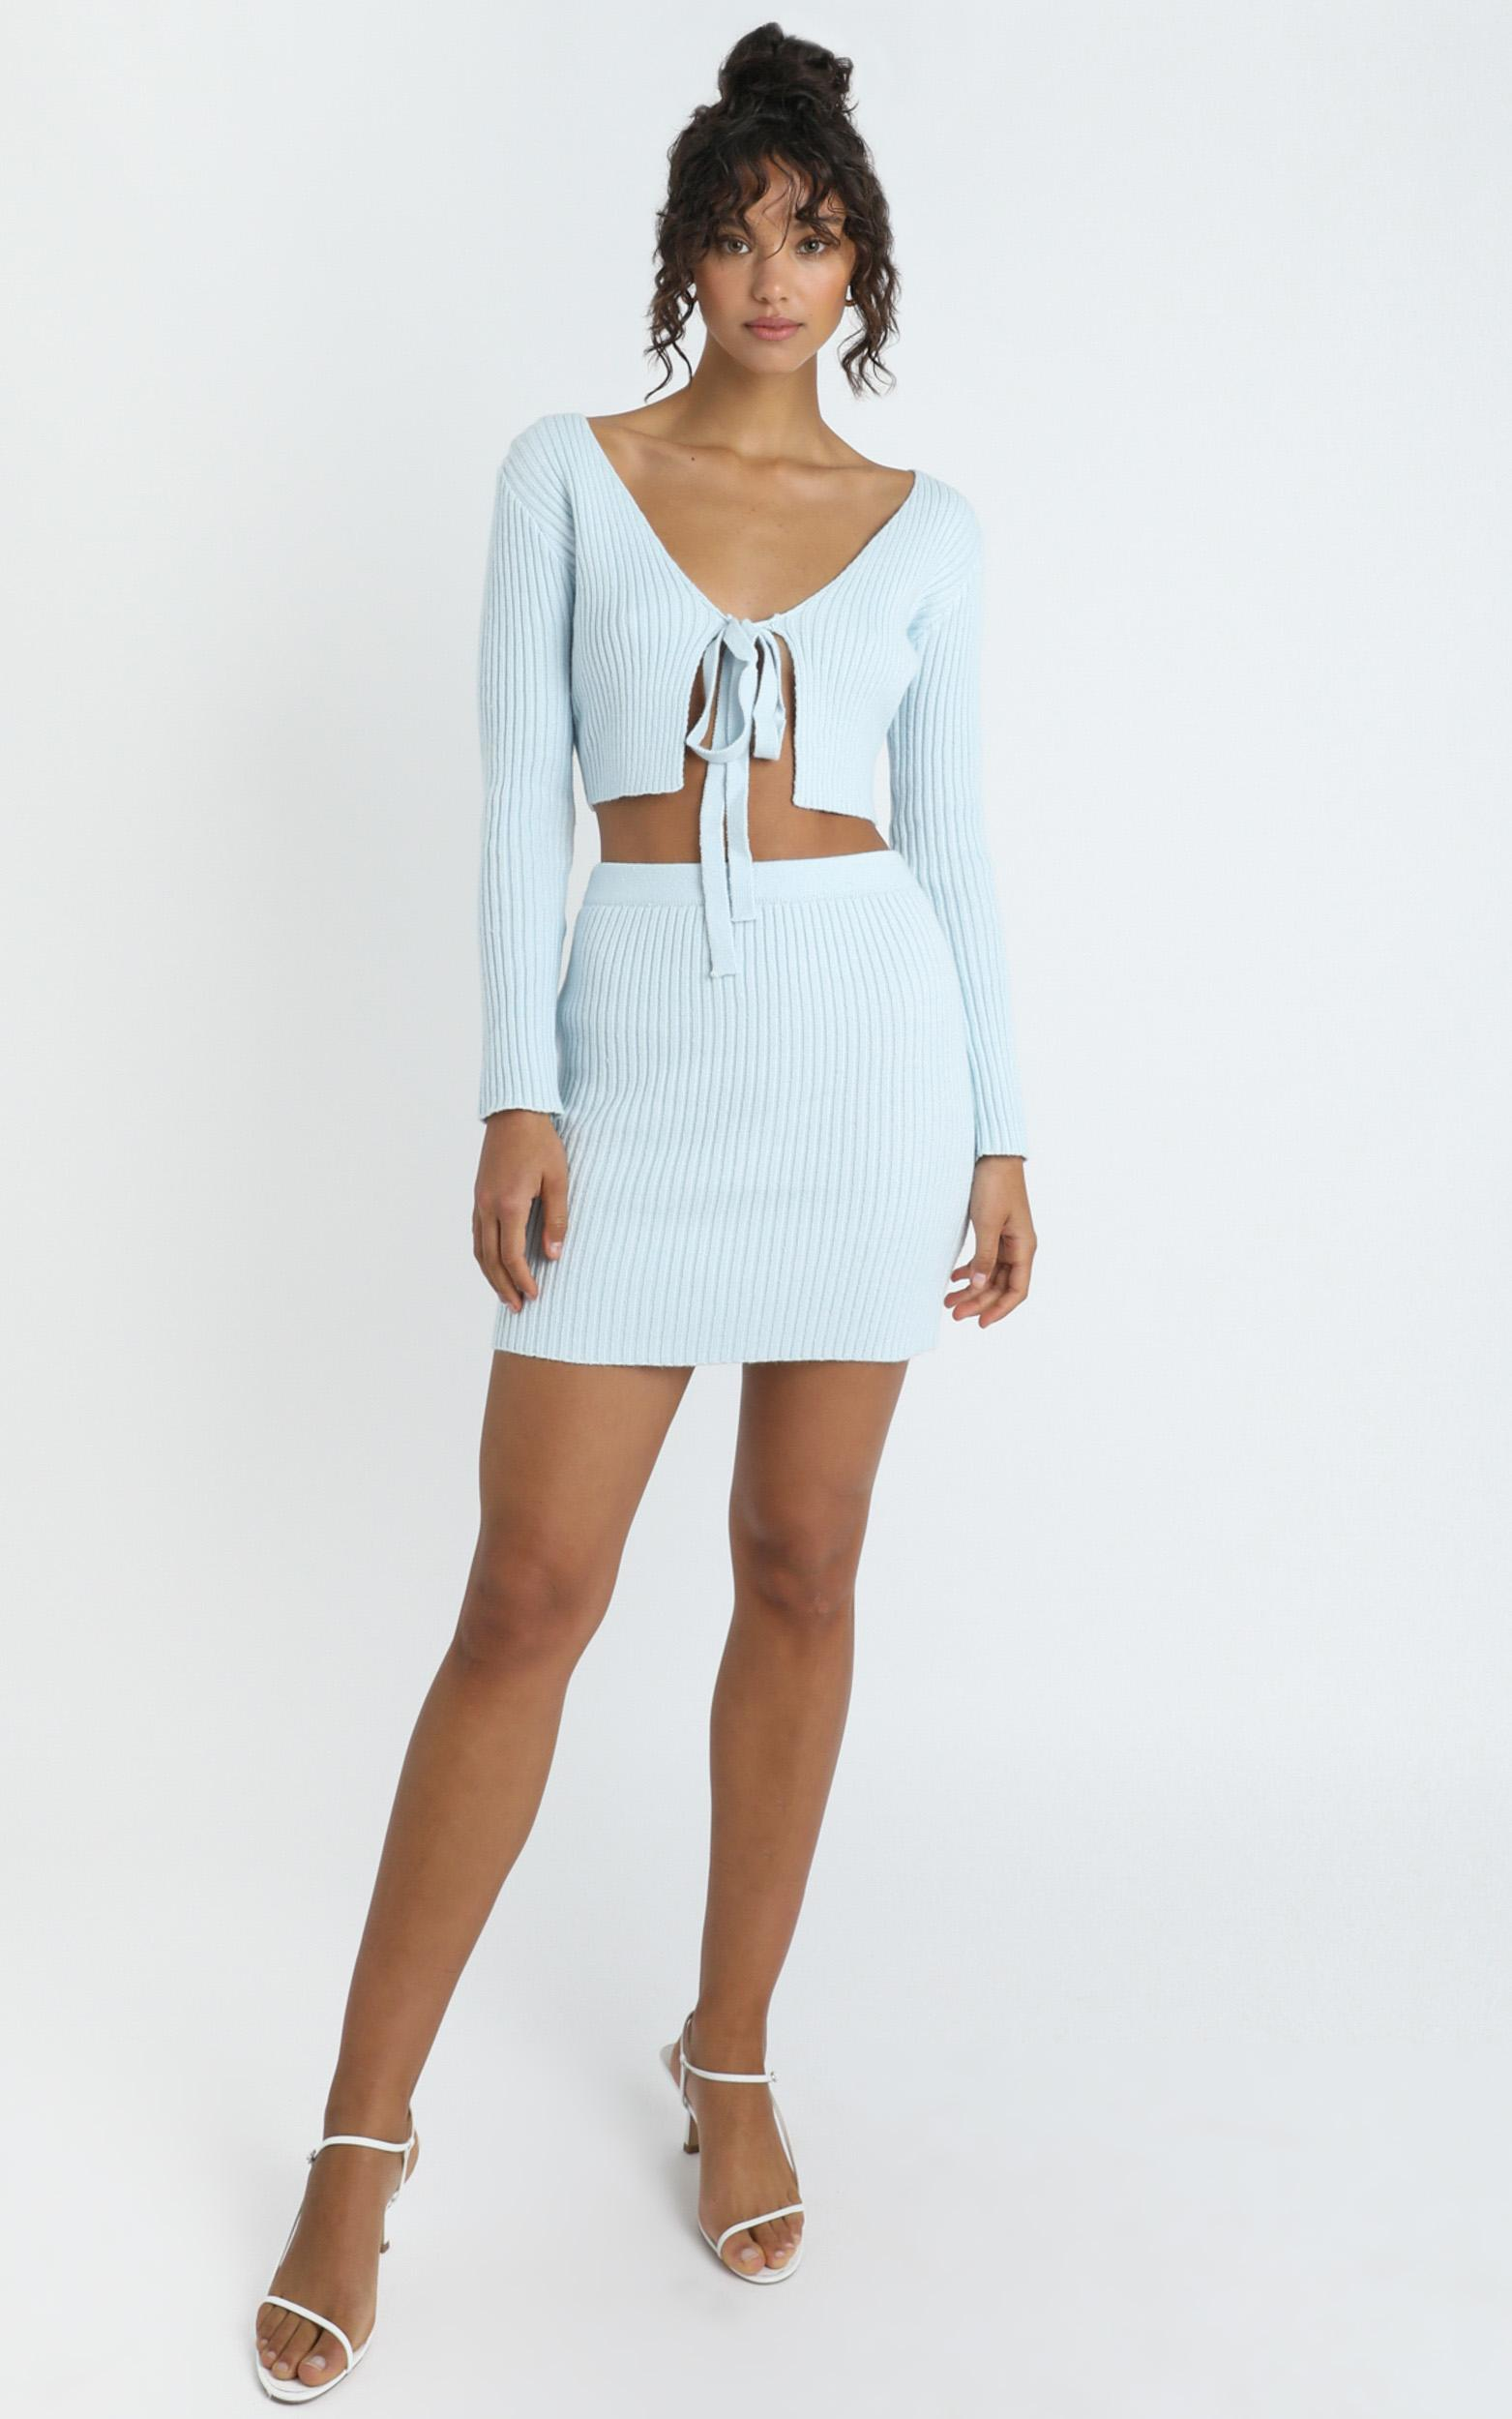 Winifred Skirt in  Pastel Blue - 8 (S), Blue, hi-res image number null